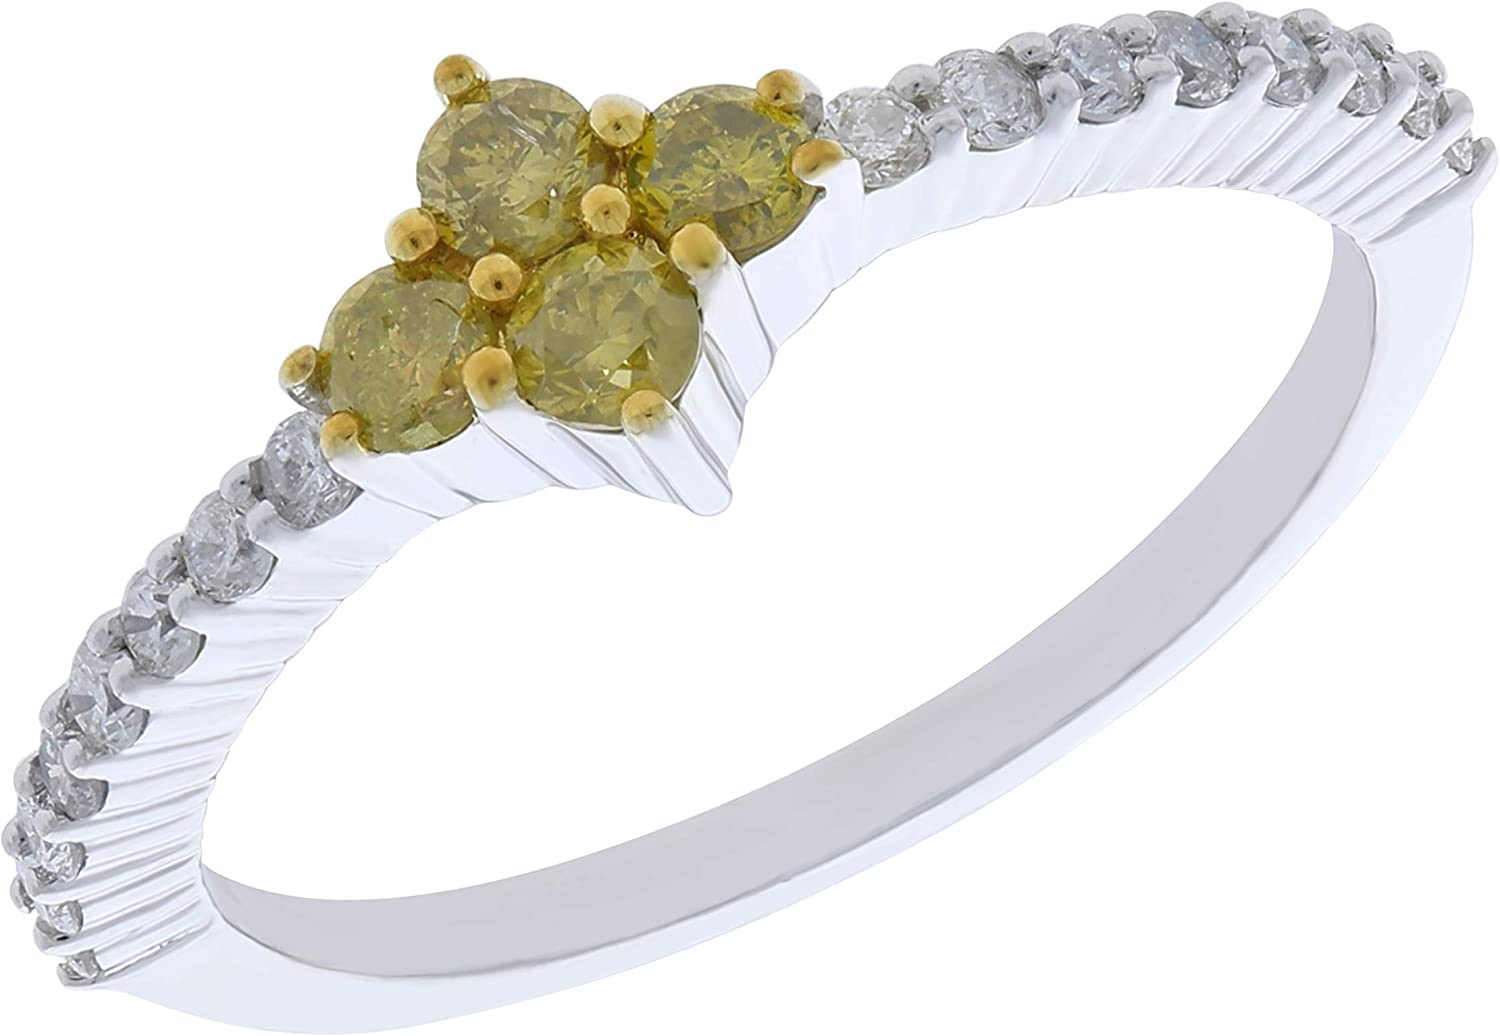 Prism Jewel 0.50Ct Yellow Diamond With Natural Diamond Stylist Ring 925 Sterling Silver